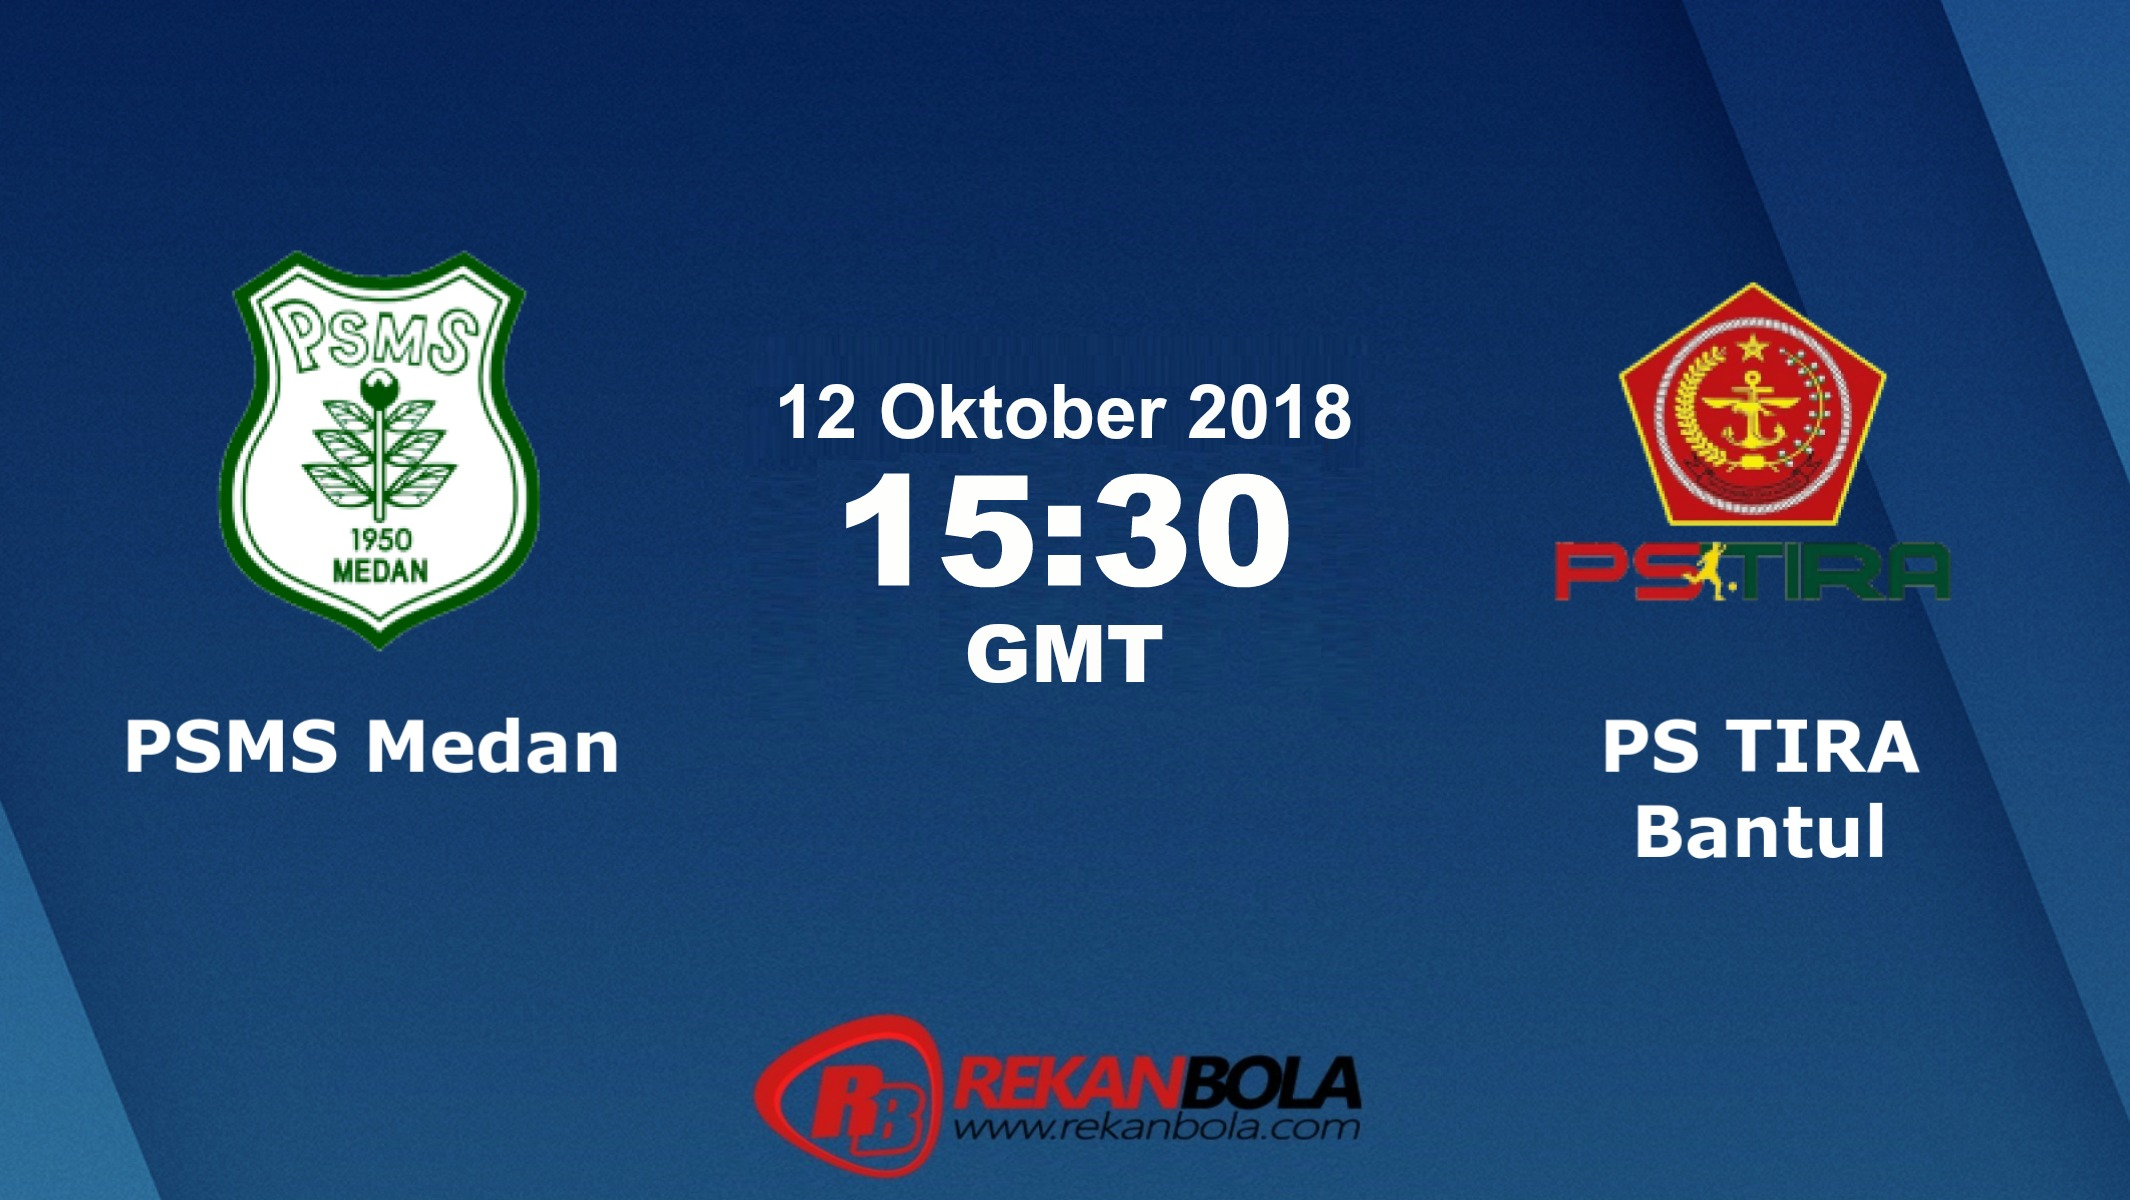 Nonton Siaran Live Streaming PSMS Vs PS Tira 12 Oktober 2018